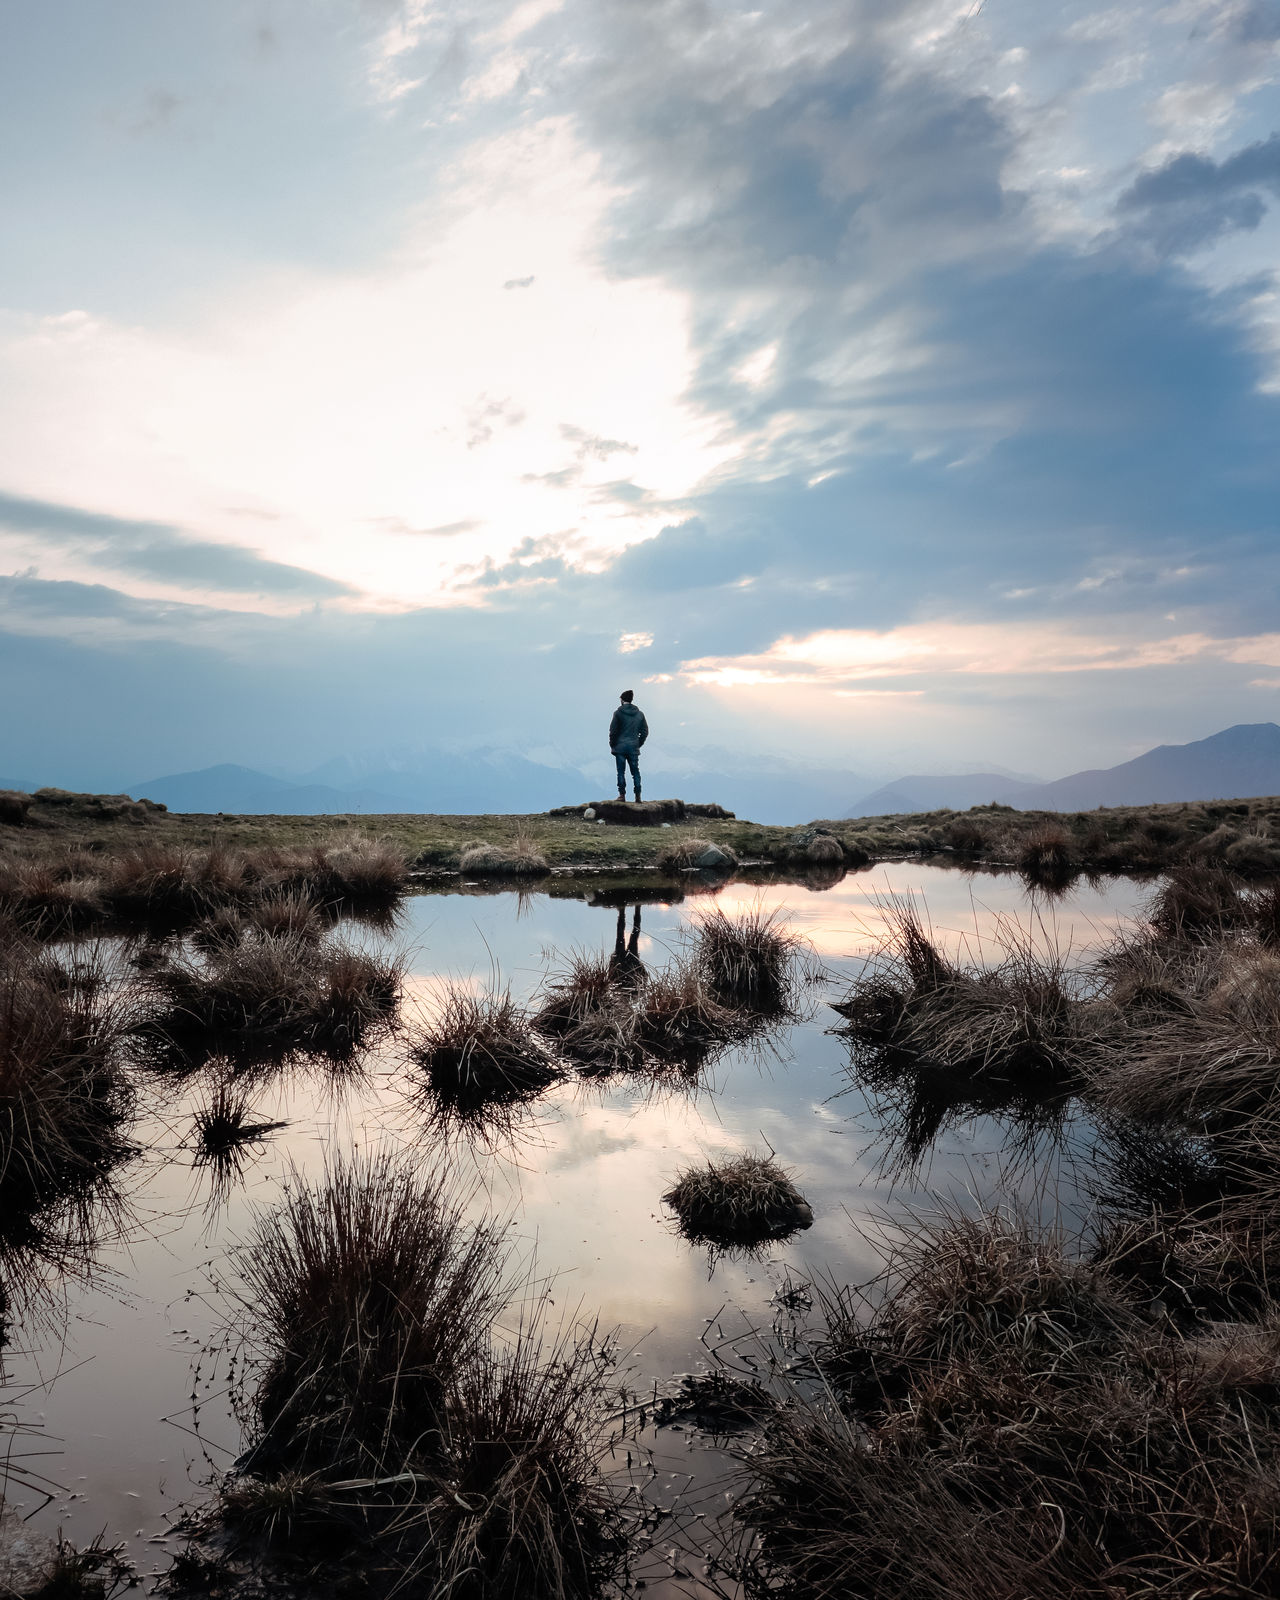 Adventure Back View Beauty In Nature Calm Cloud - Sky Hikingadventures Lake Lonely Mountains And Sky Nature On Top One Person Outdoors Real People Reflections Scenics Silhouette Sky Standing Standing Water Sunset The Great Outdoors - 2017 EyeEm Awards Tranquil Scene Tranquility Wild